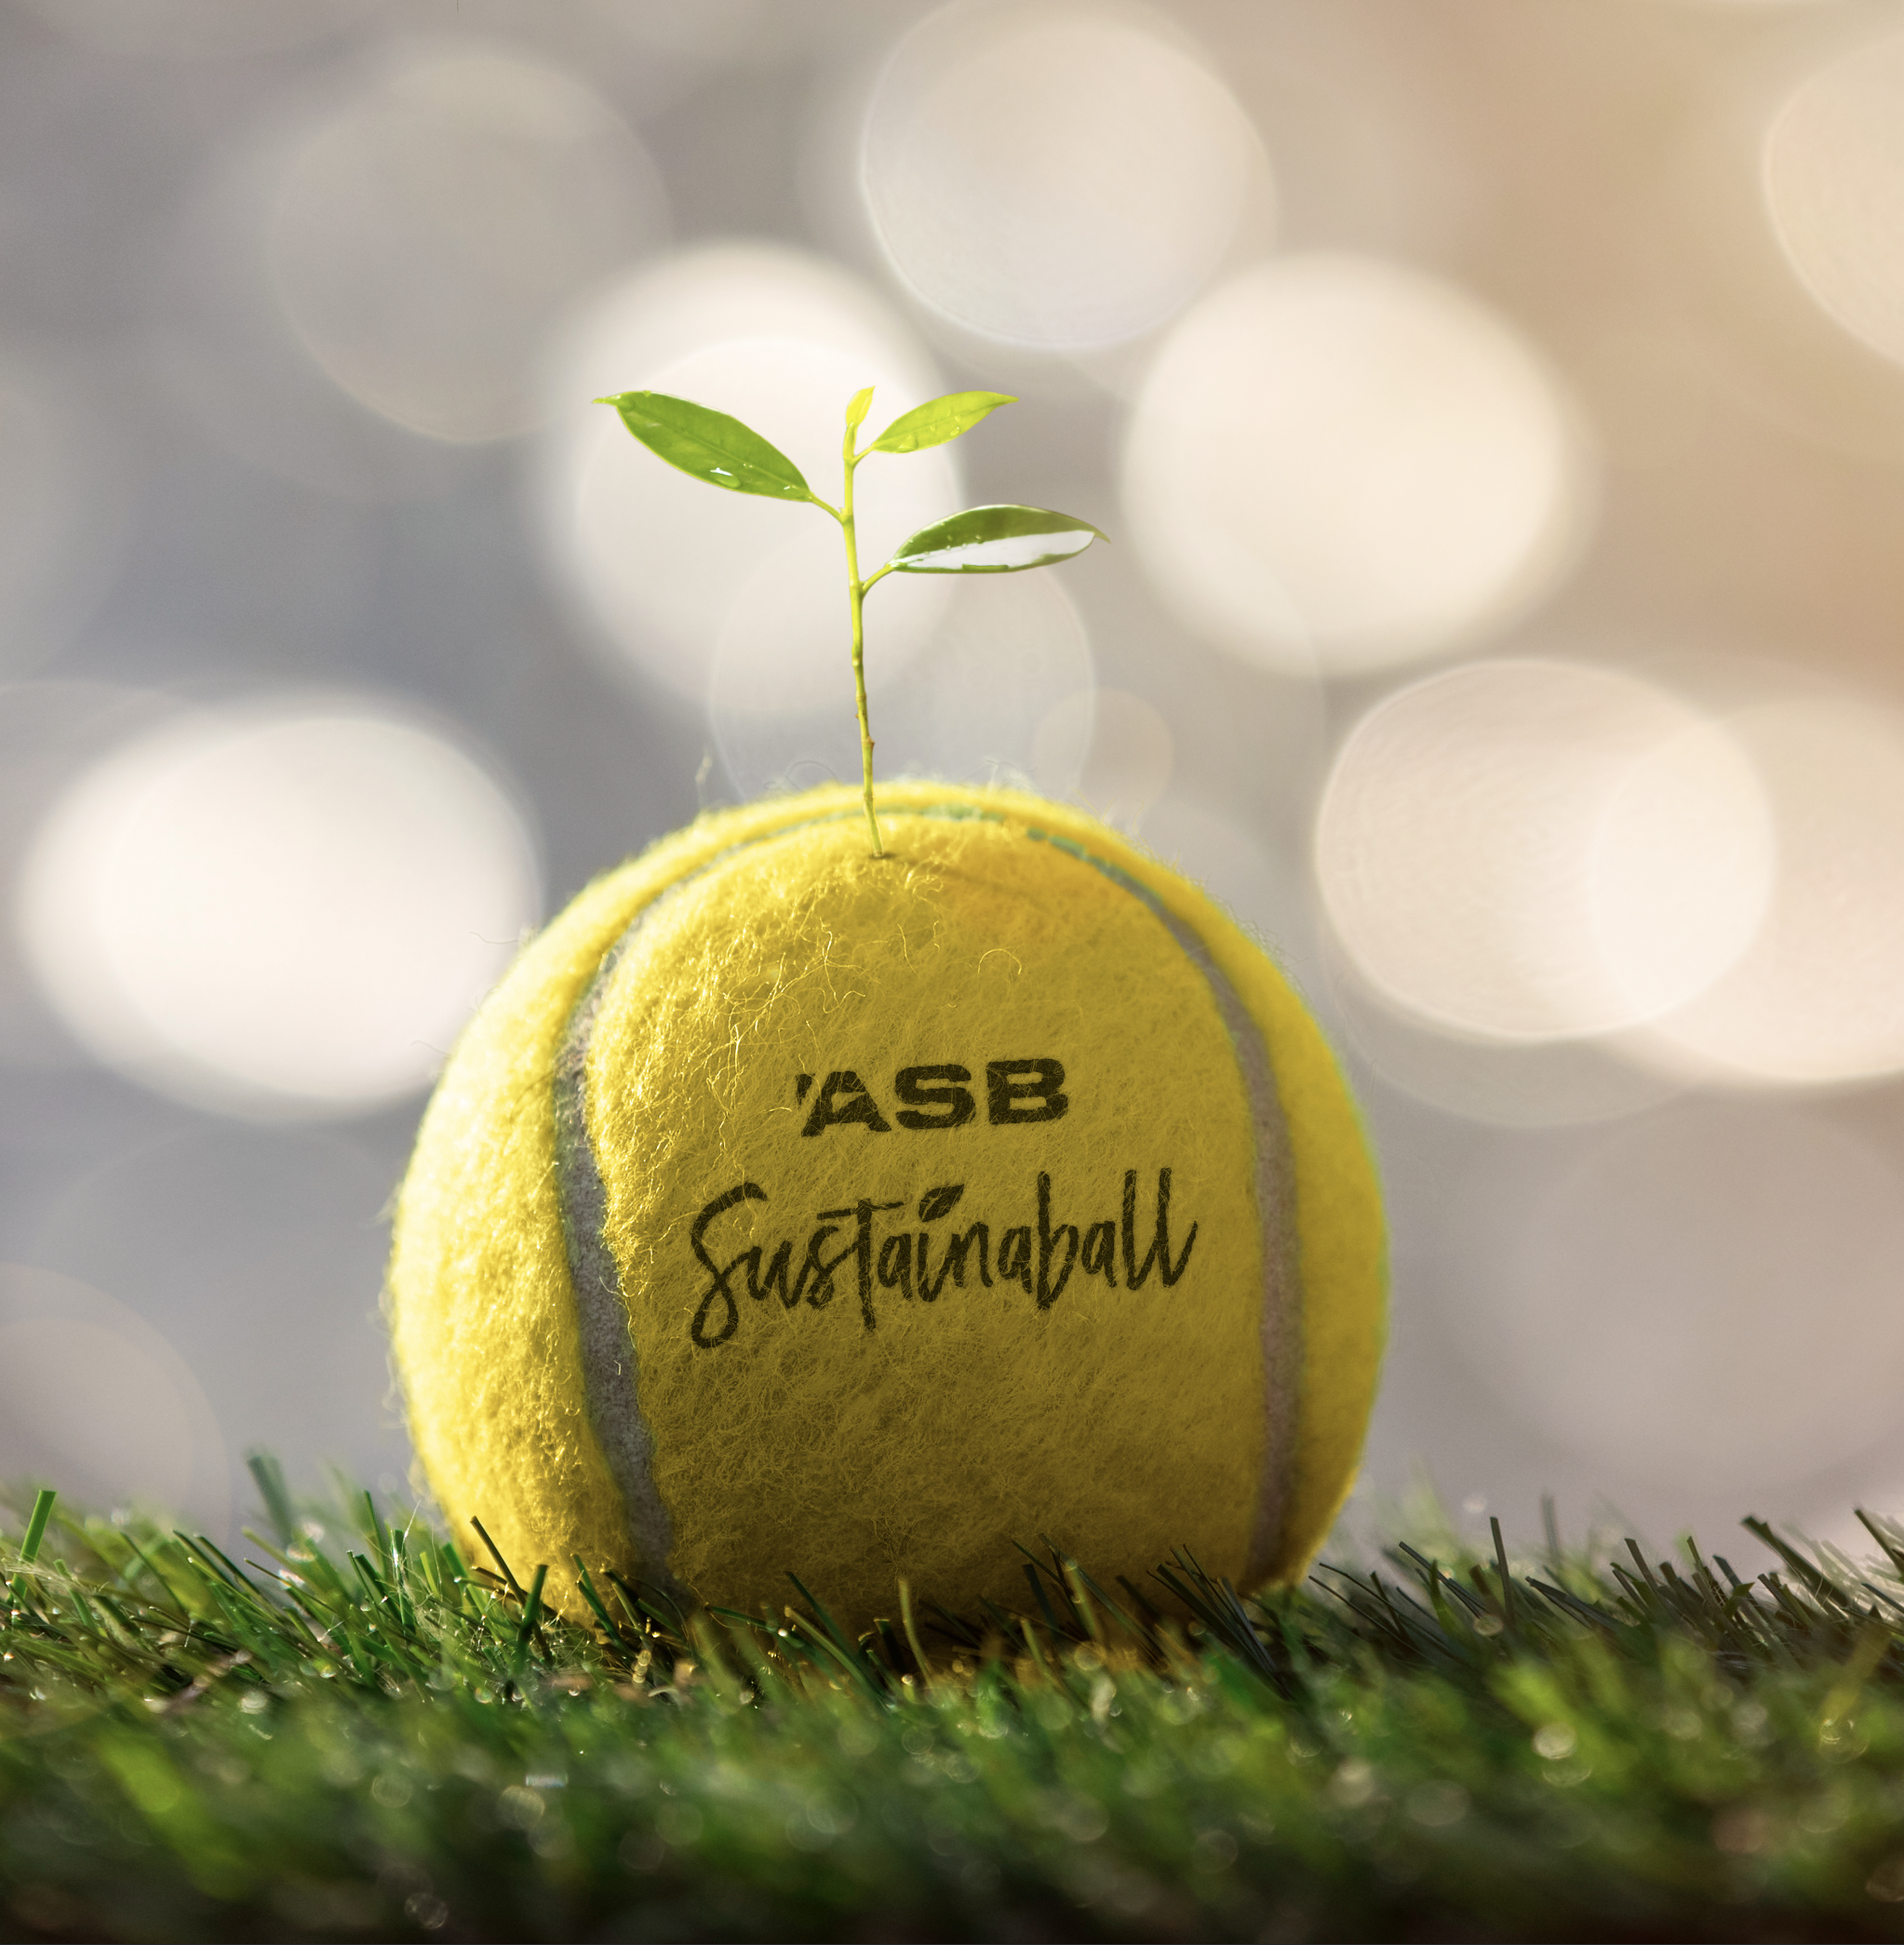 ASB creates the biodegradable 'Sustainaball' via WiTH Collective linked by Isobar New Zealand